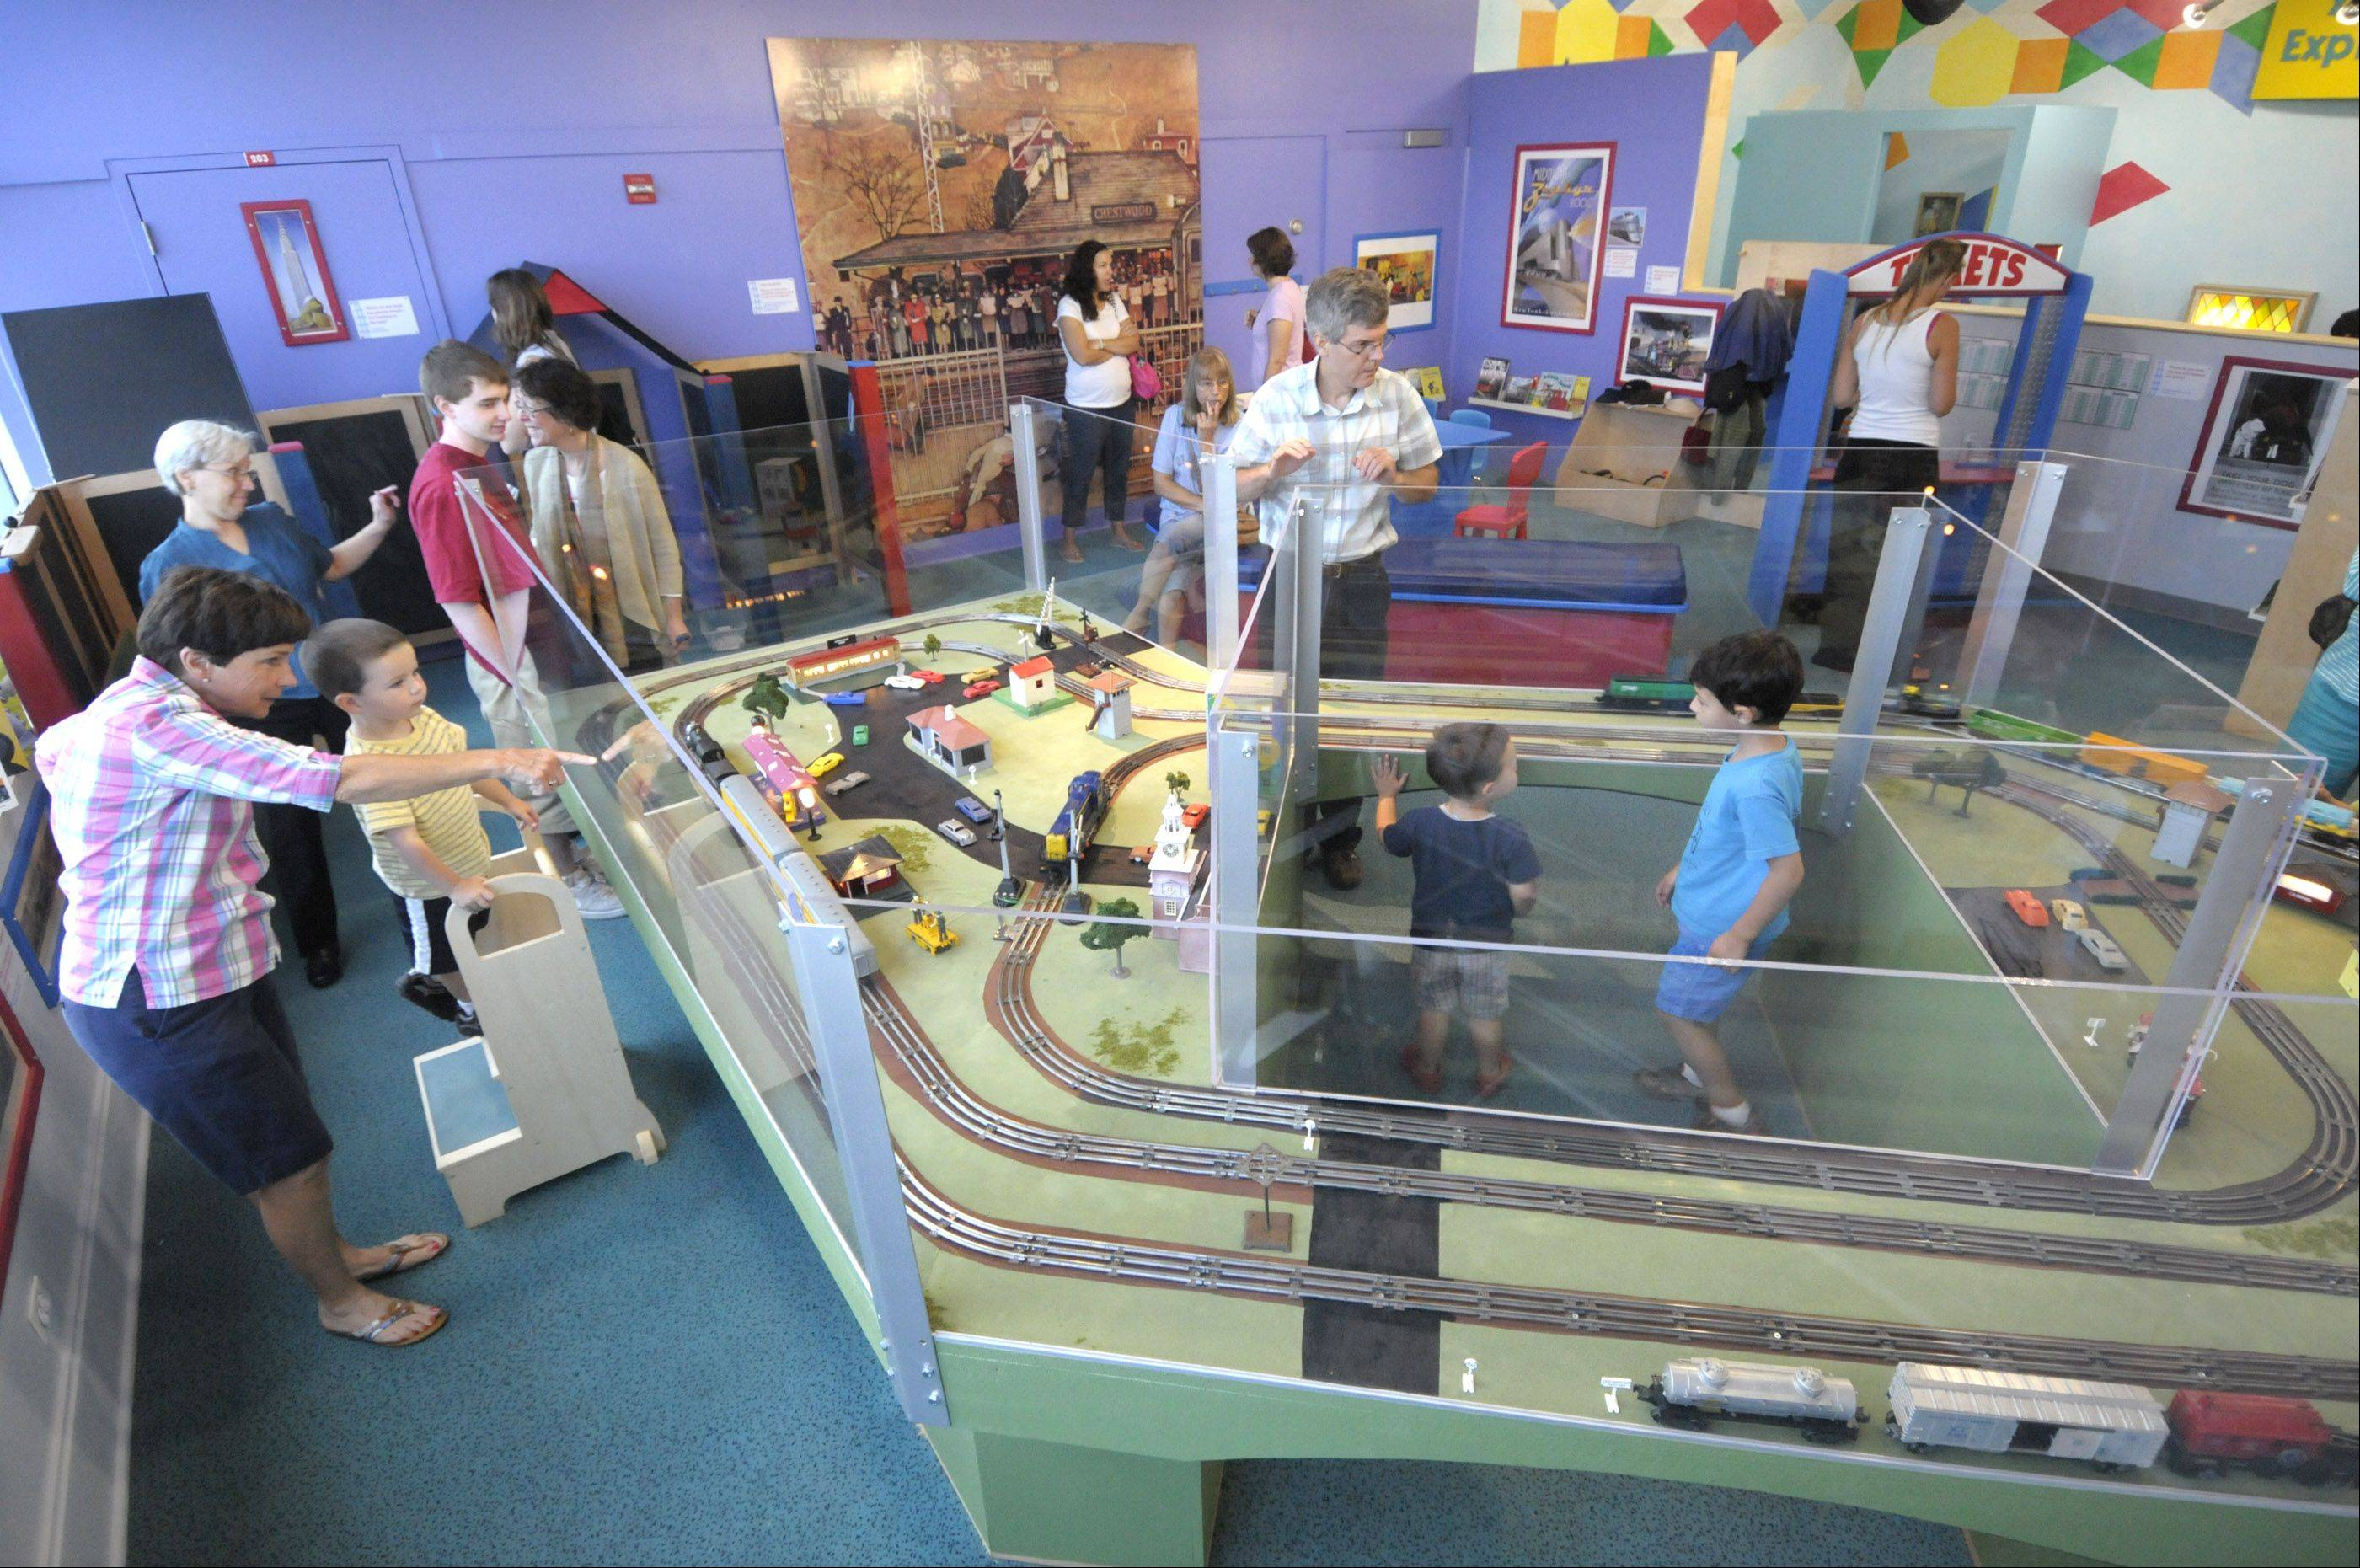 DuPage Children�s Museum�s new exhibit allows kids to pretend to be engineers, dispatchers and ticket agents. With the aid of a stepstool, left, Danny Flynn, and his grandmother Margie Flynn get a close-up view of the Lionel train layout.